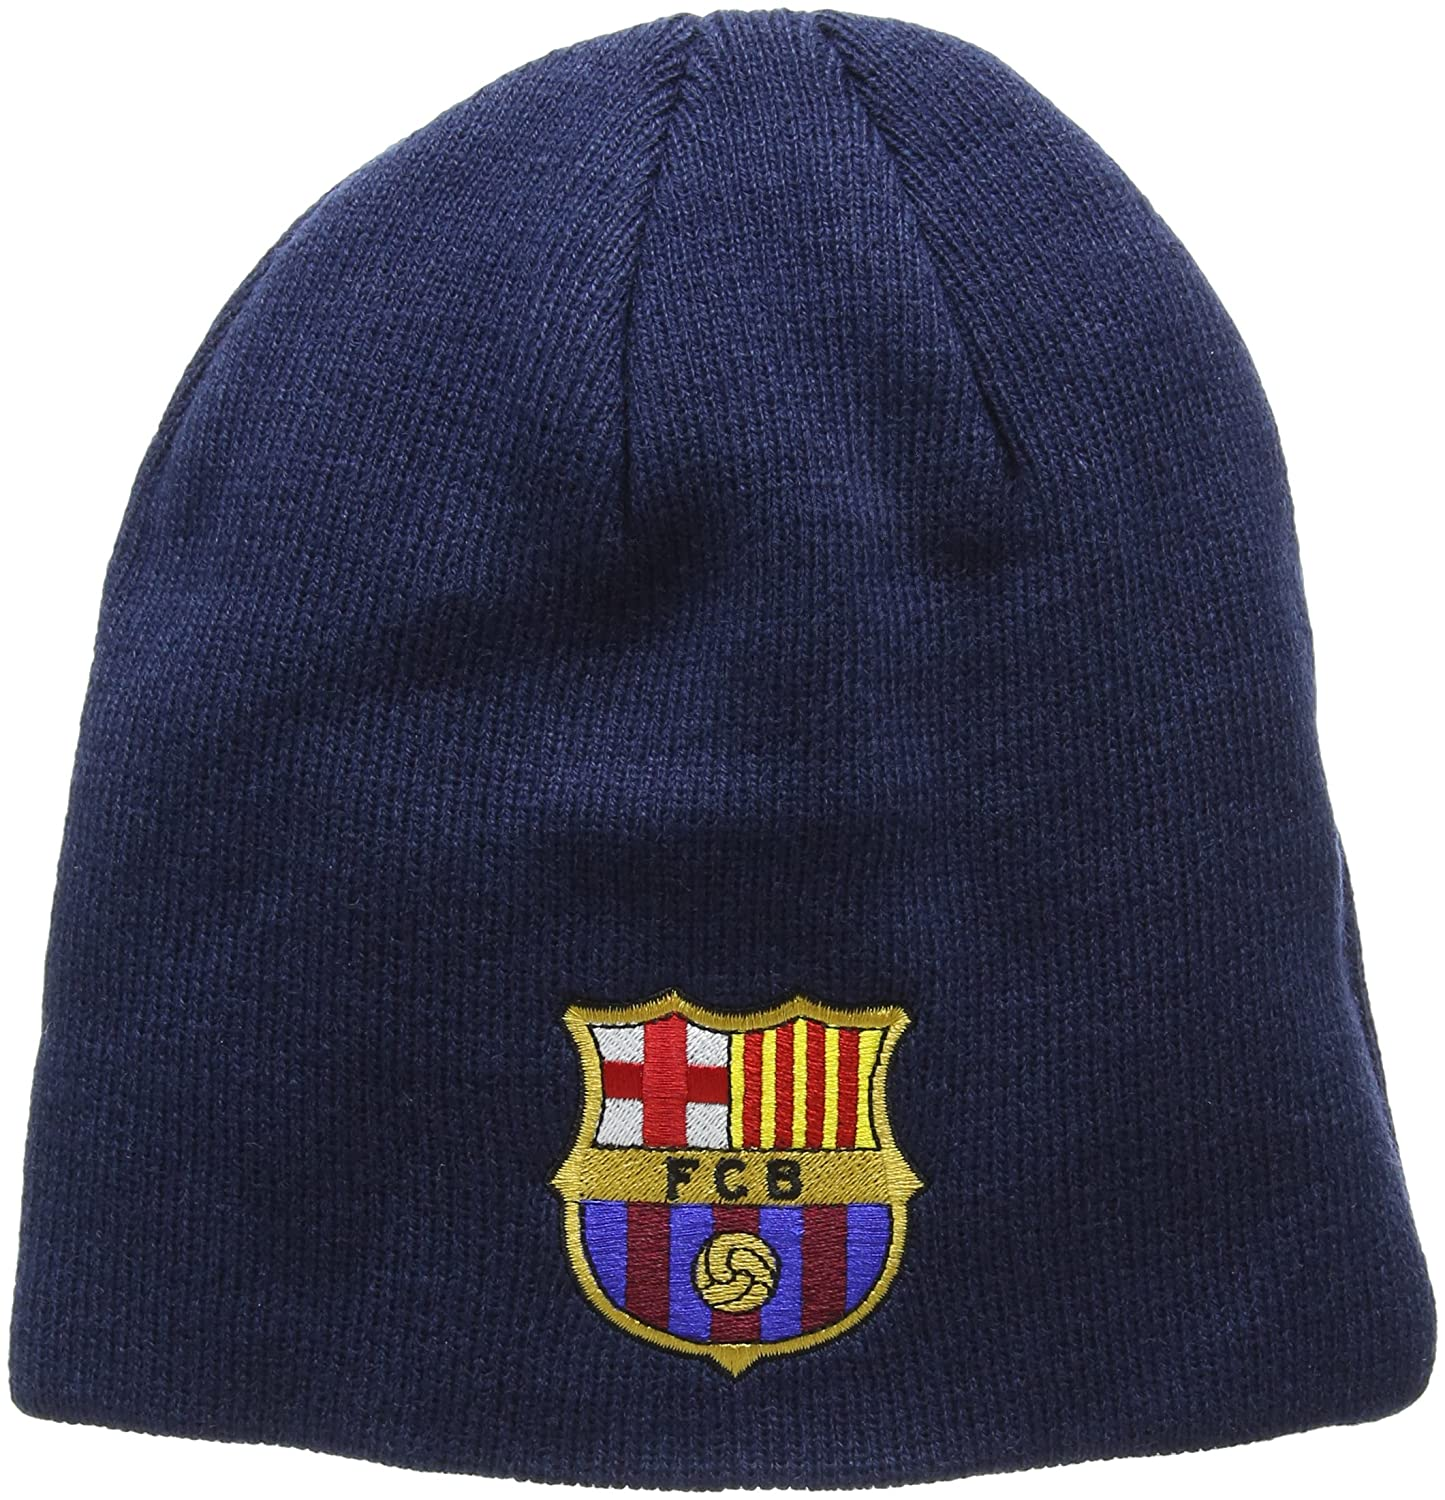 8a13fc3007c5db FC Barcelona Knitted Core Beanie Hat - FCB Bronx Beanie - Great Barcelona  Fan Knitted Hat - Official Barca Gear - One Size Fits Most - 100% Acrylic -  Navy ...